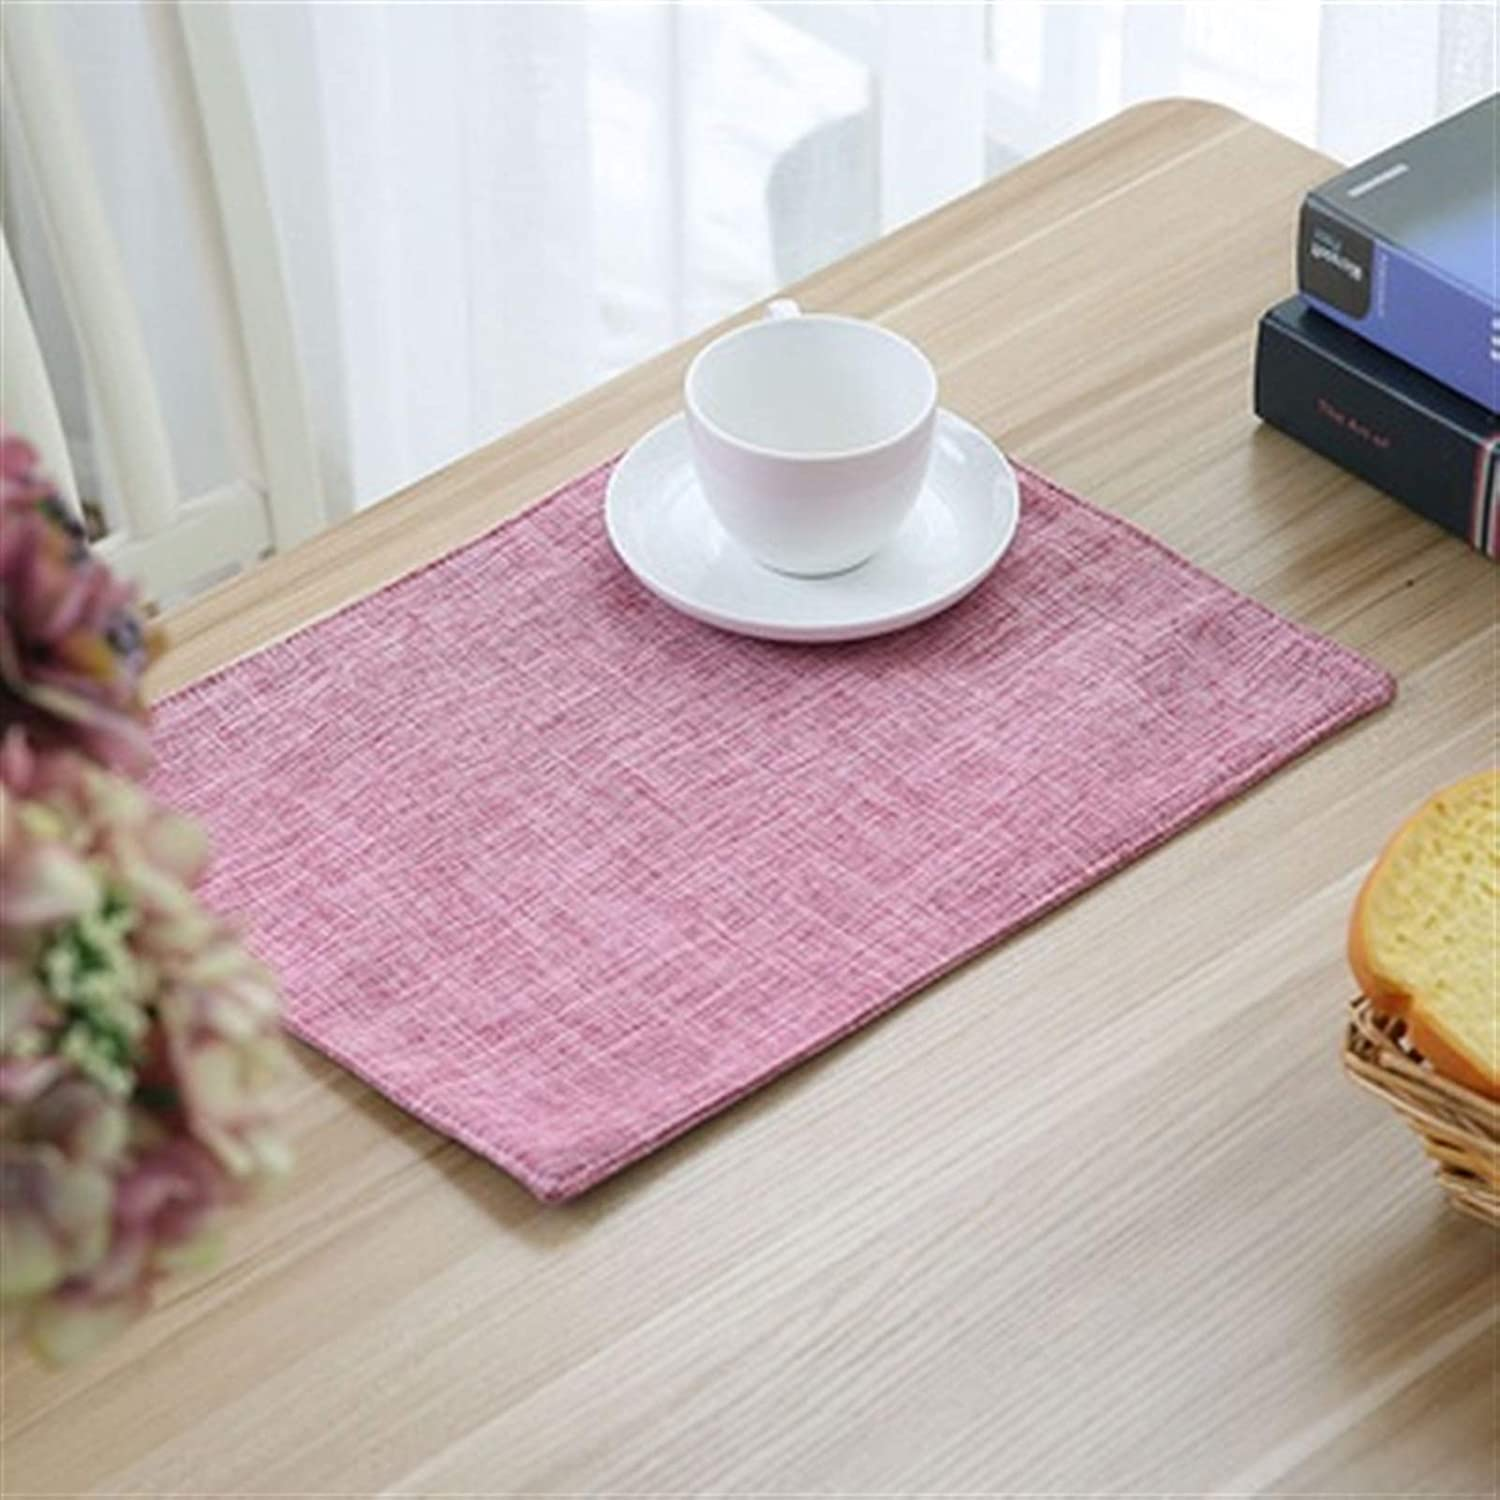 Handmade Simple Rectangular Table Runners t solid Al sold out. Morden Rapid rise concise